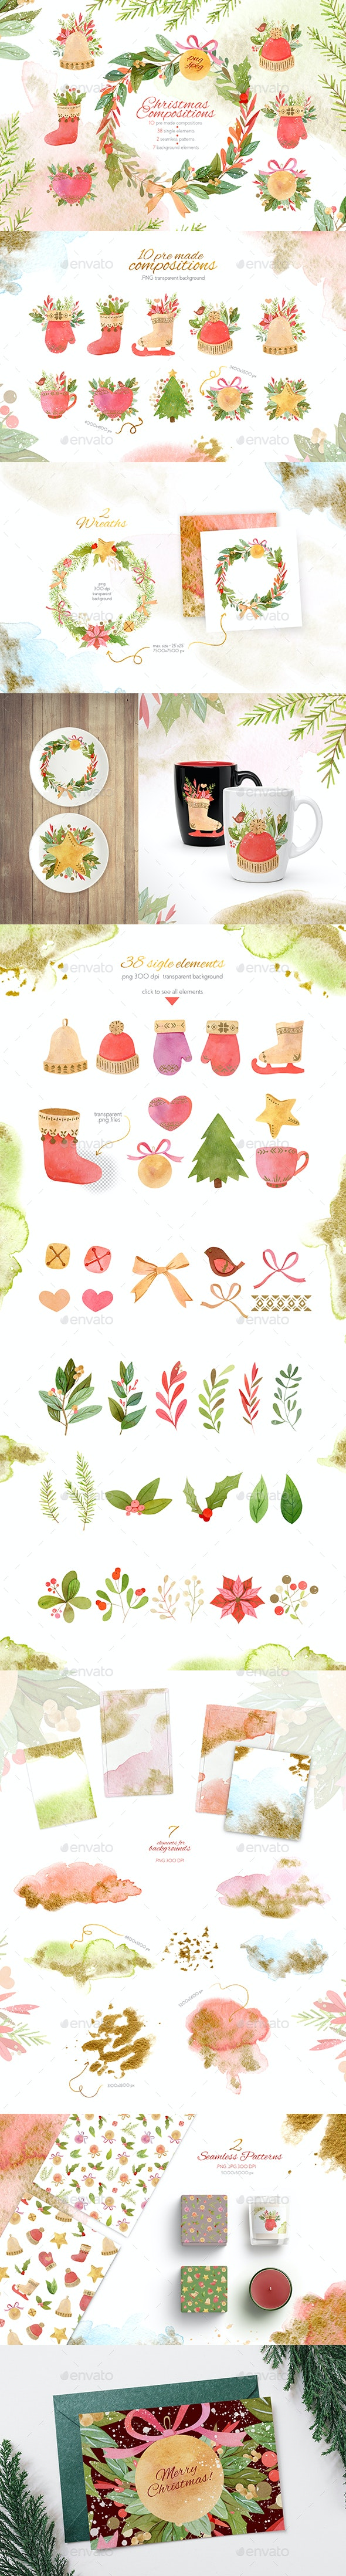 Watercolor Christmas Compositions Set - Illustrations Graphics